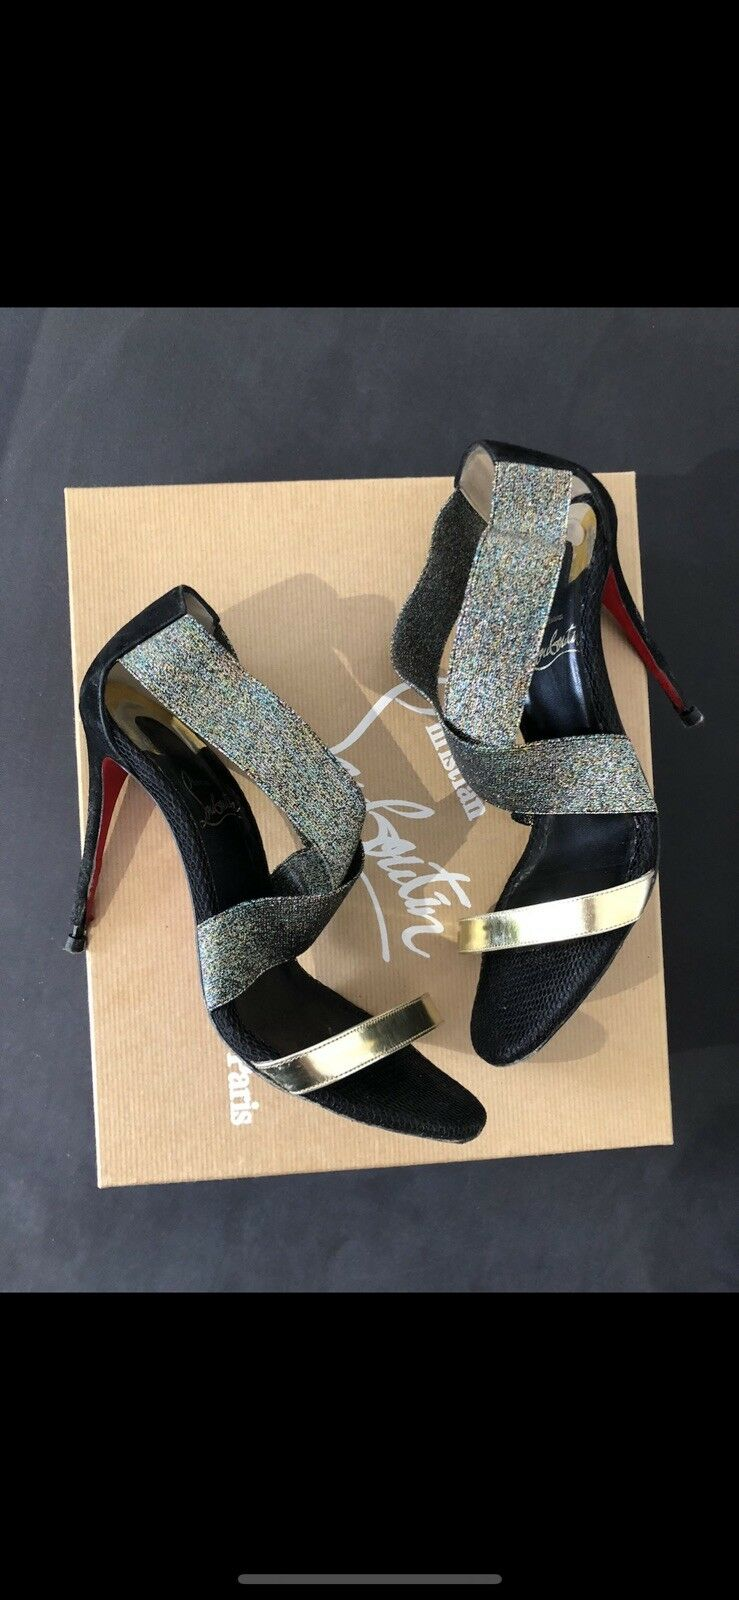 Christian Louboutin Sandale Chaussures Taille 5